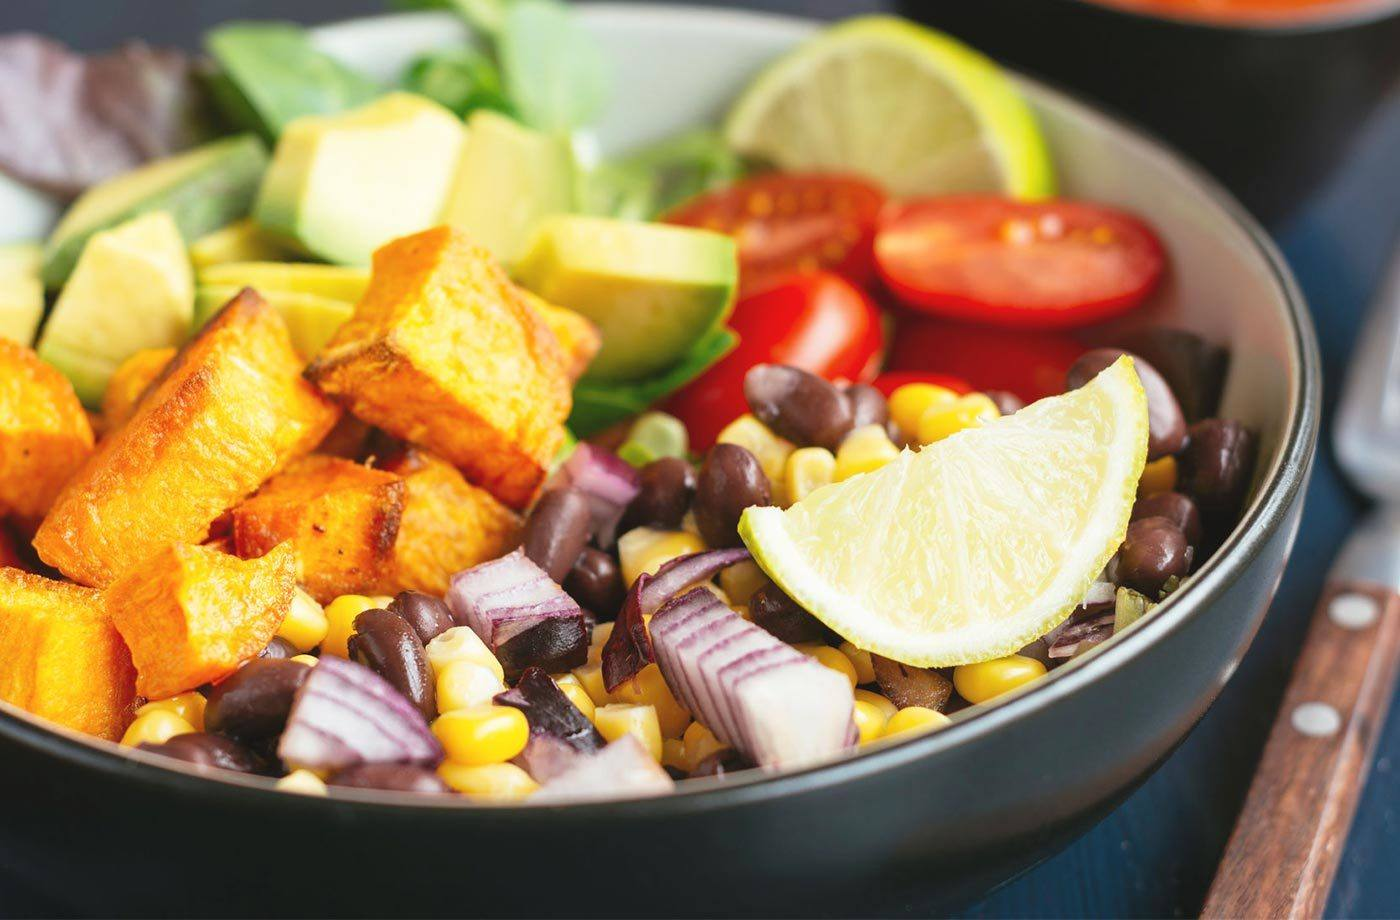 THINK VEGGIES ARE CAUSING YOUR BLOAT? A HOLISTIC HEALTH COACH WEIGHS IN